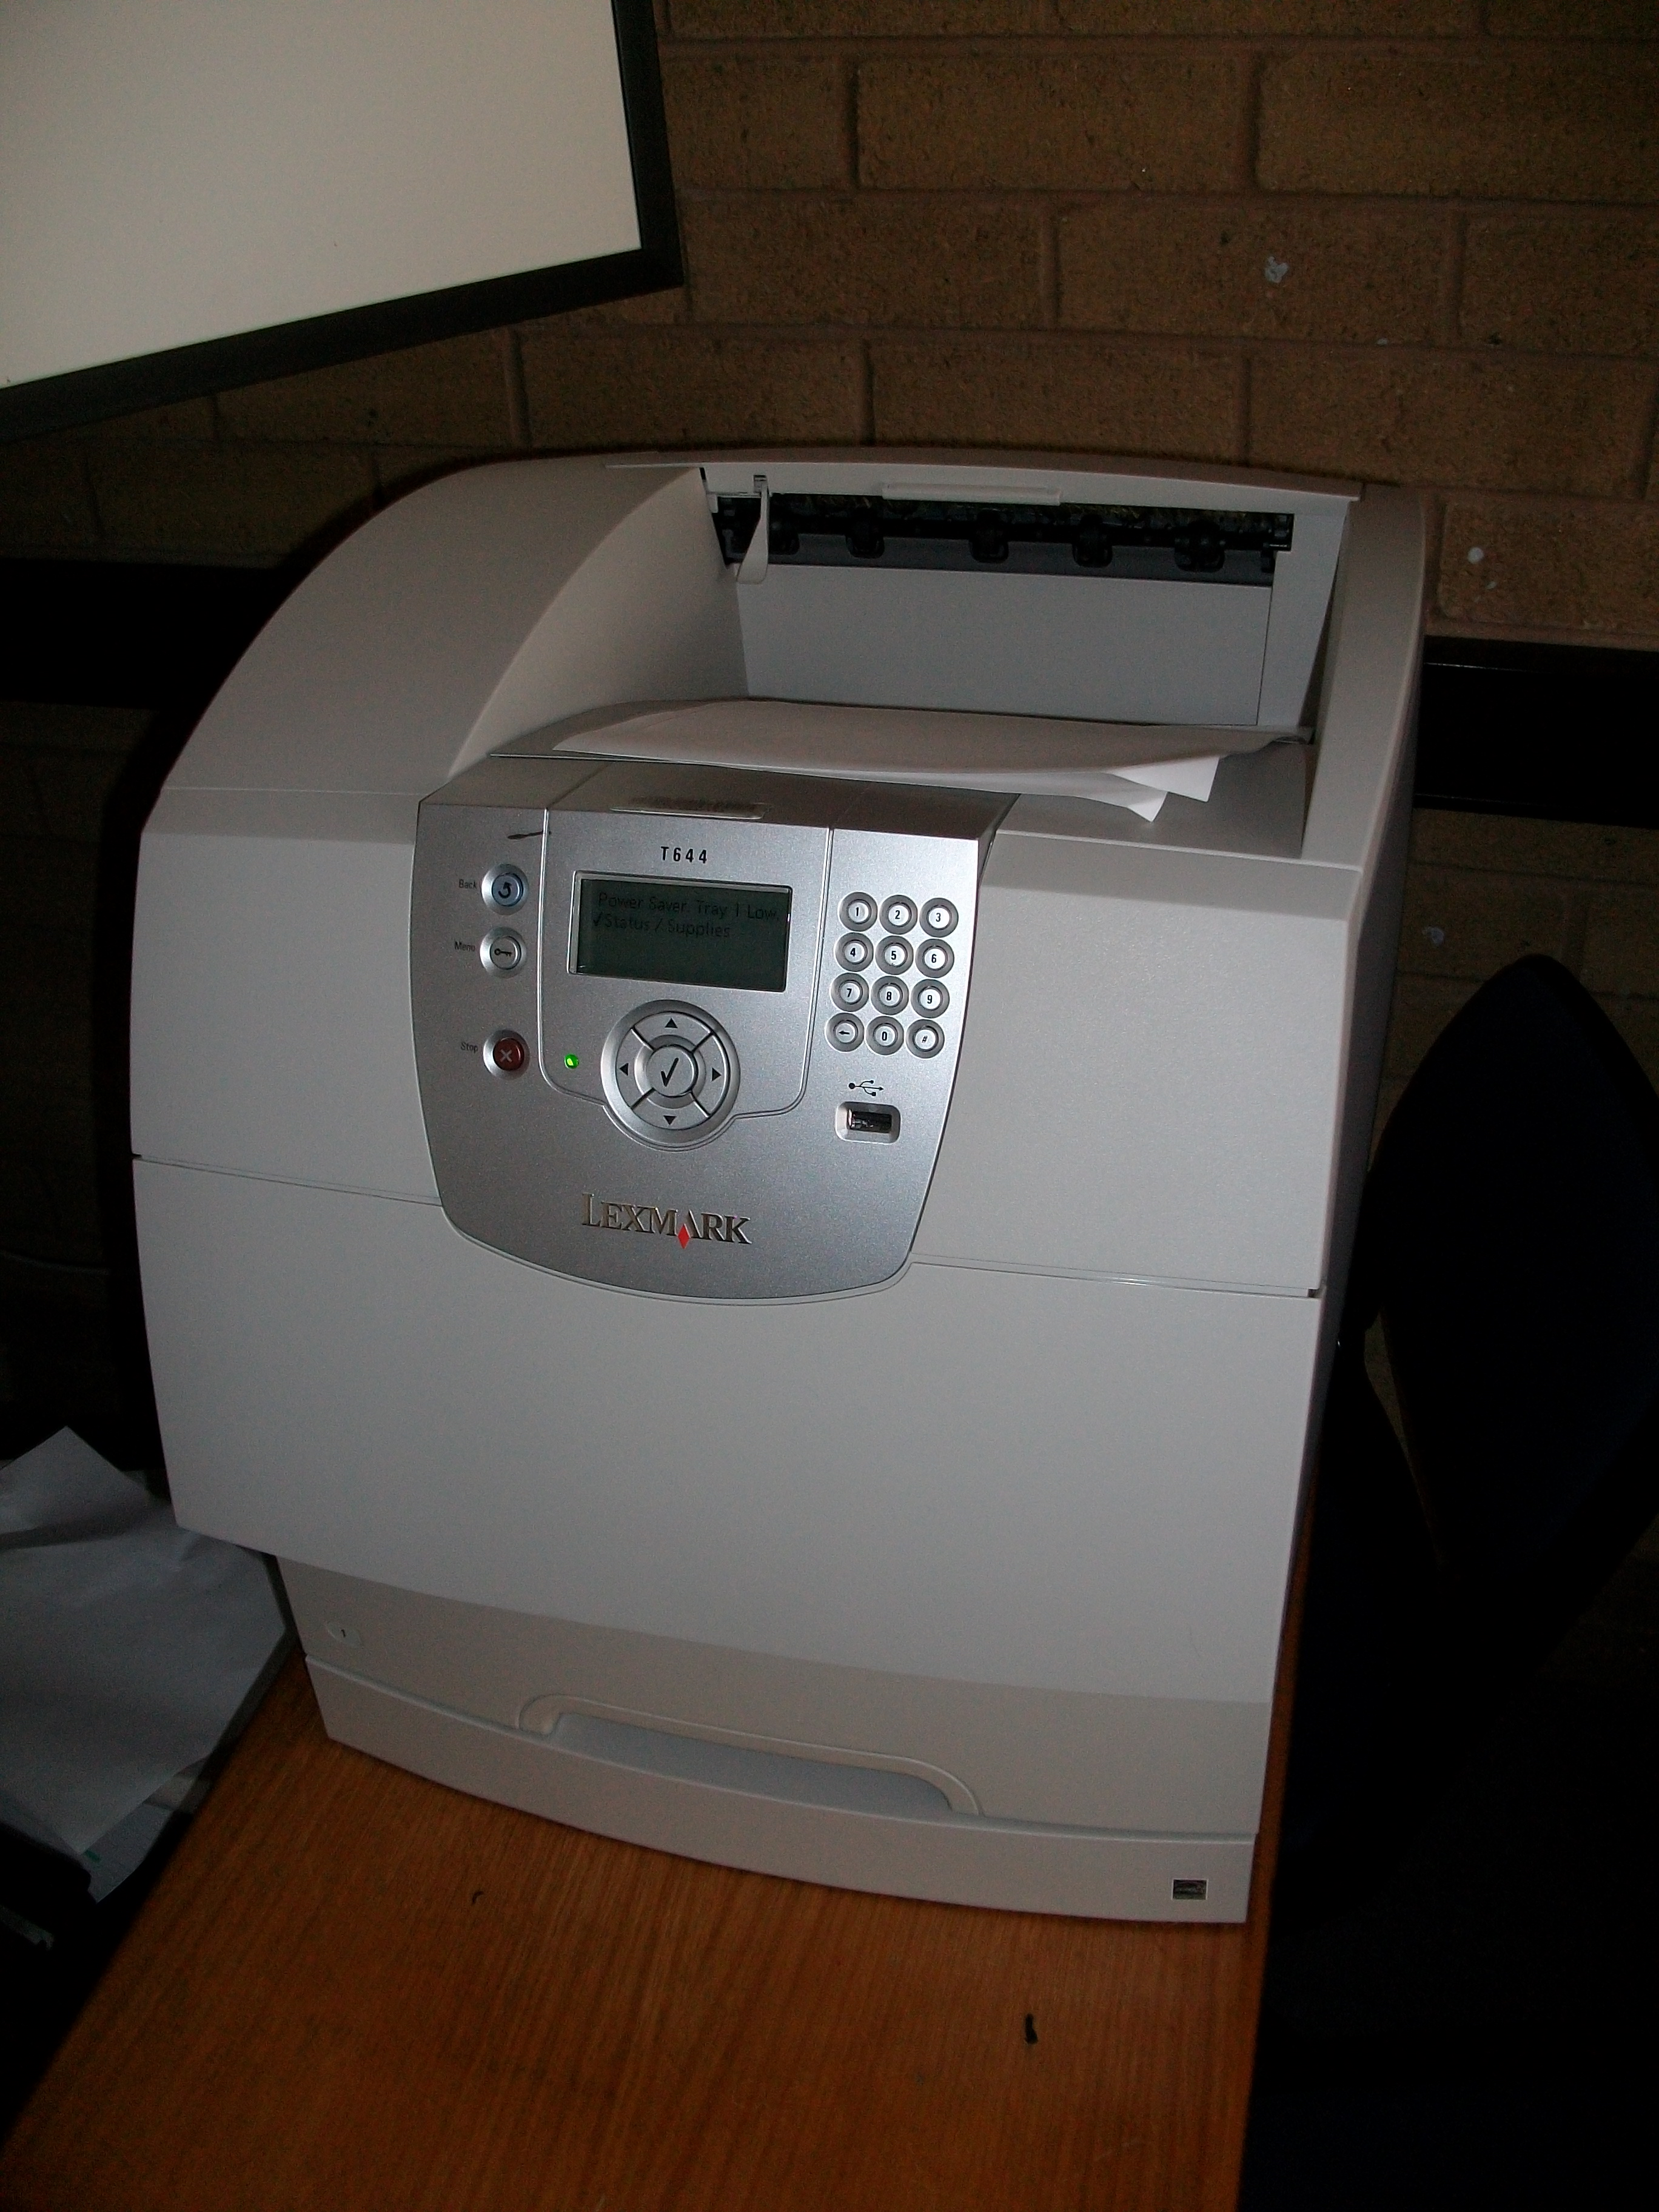 operation of a laser printer essay Operations management responsibilities and issues  of inkjet printers and laser printers that connect to personal computers  of this essay and no longer wish.